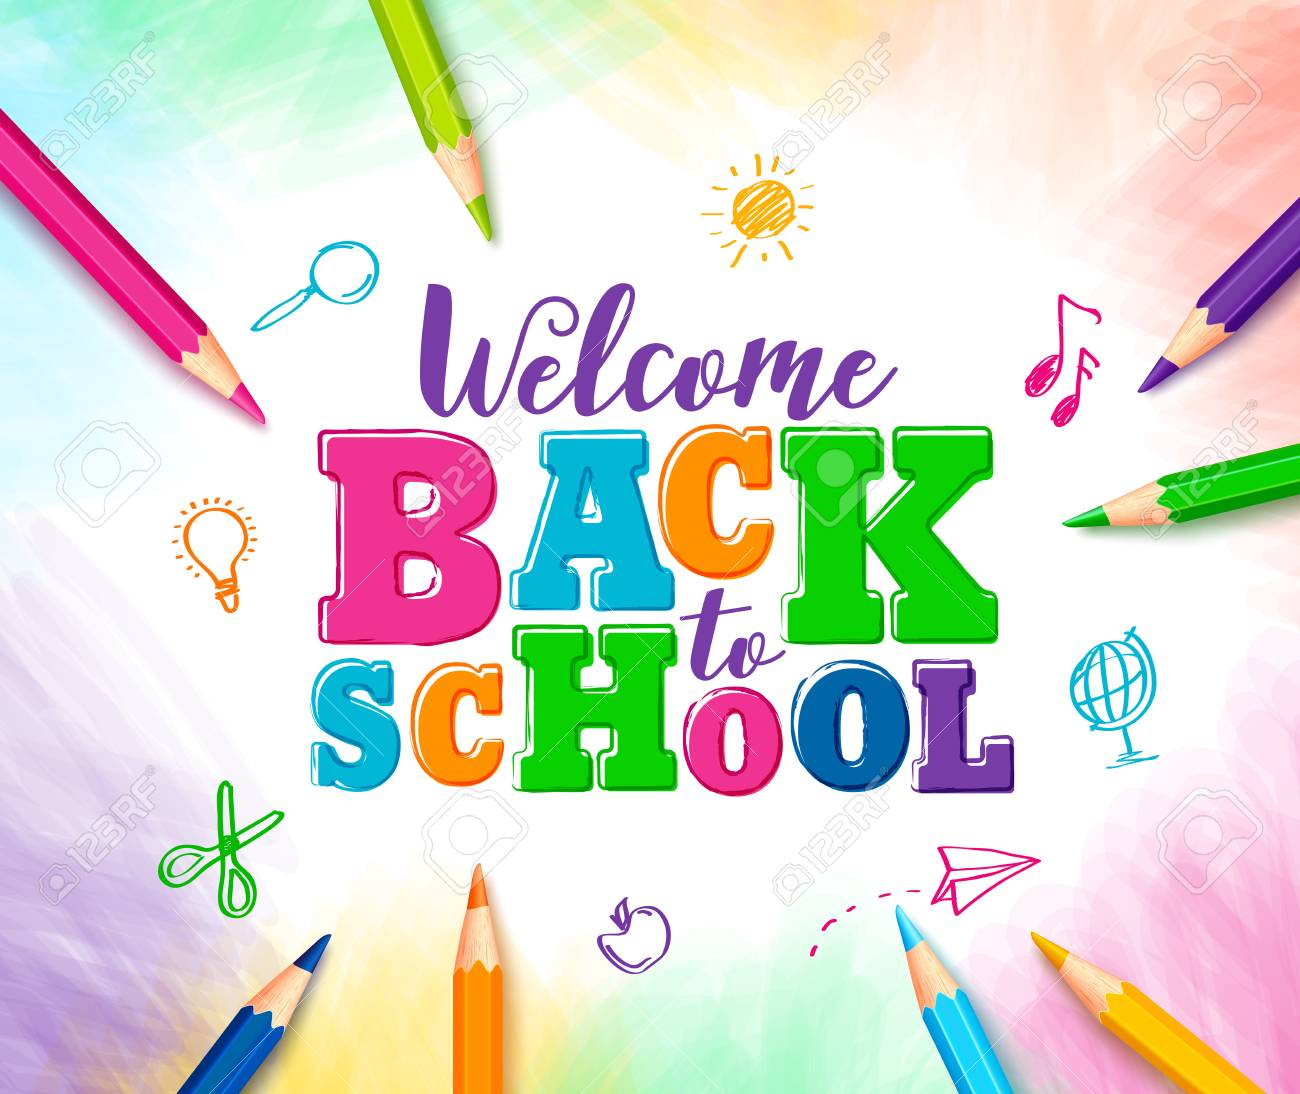 Welcome Back To School Vector Design With Colorful Text And Drawings.. Royalty Free Cliparts, Vectors, And Stock Illustration. Image 75457023.